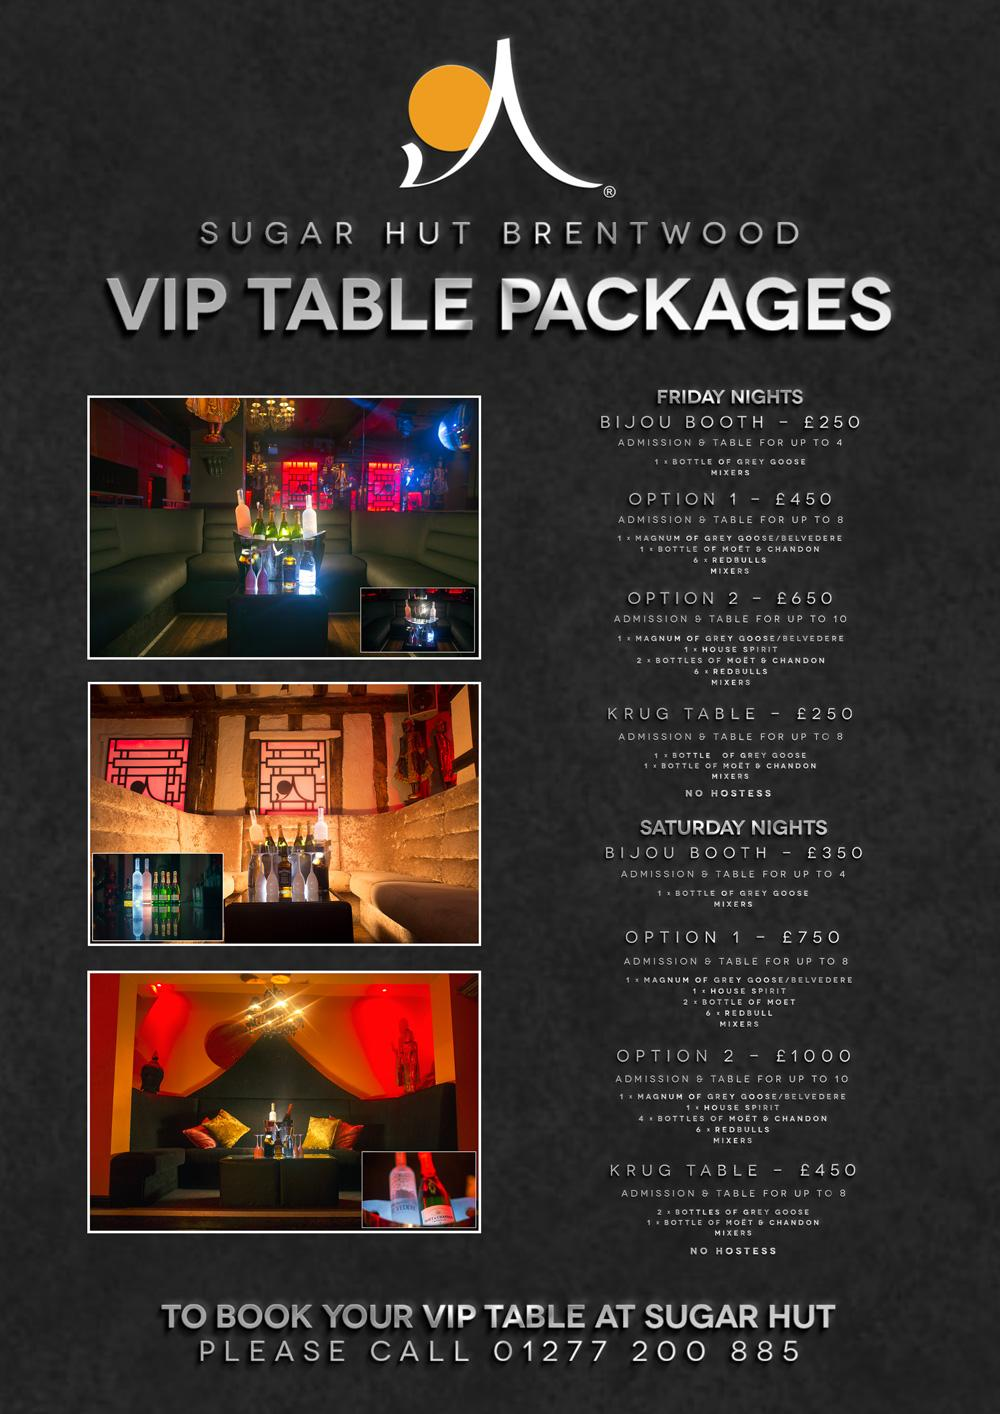 For table bookings and enquiries please call us on 01277 200885 for more information and booking details http://t.co/byZ04xFXYd